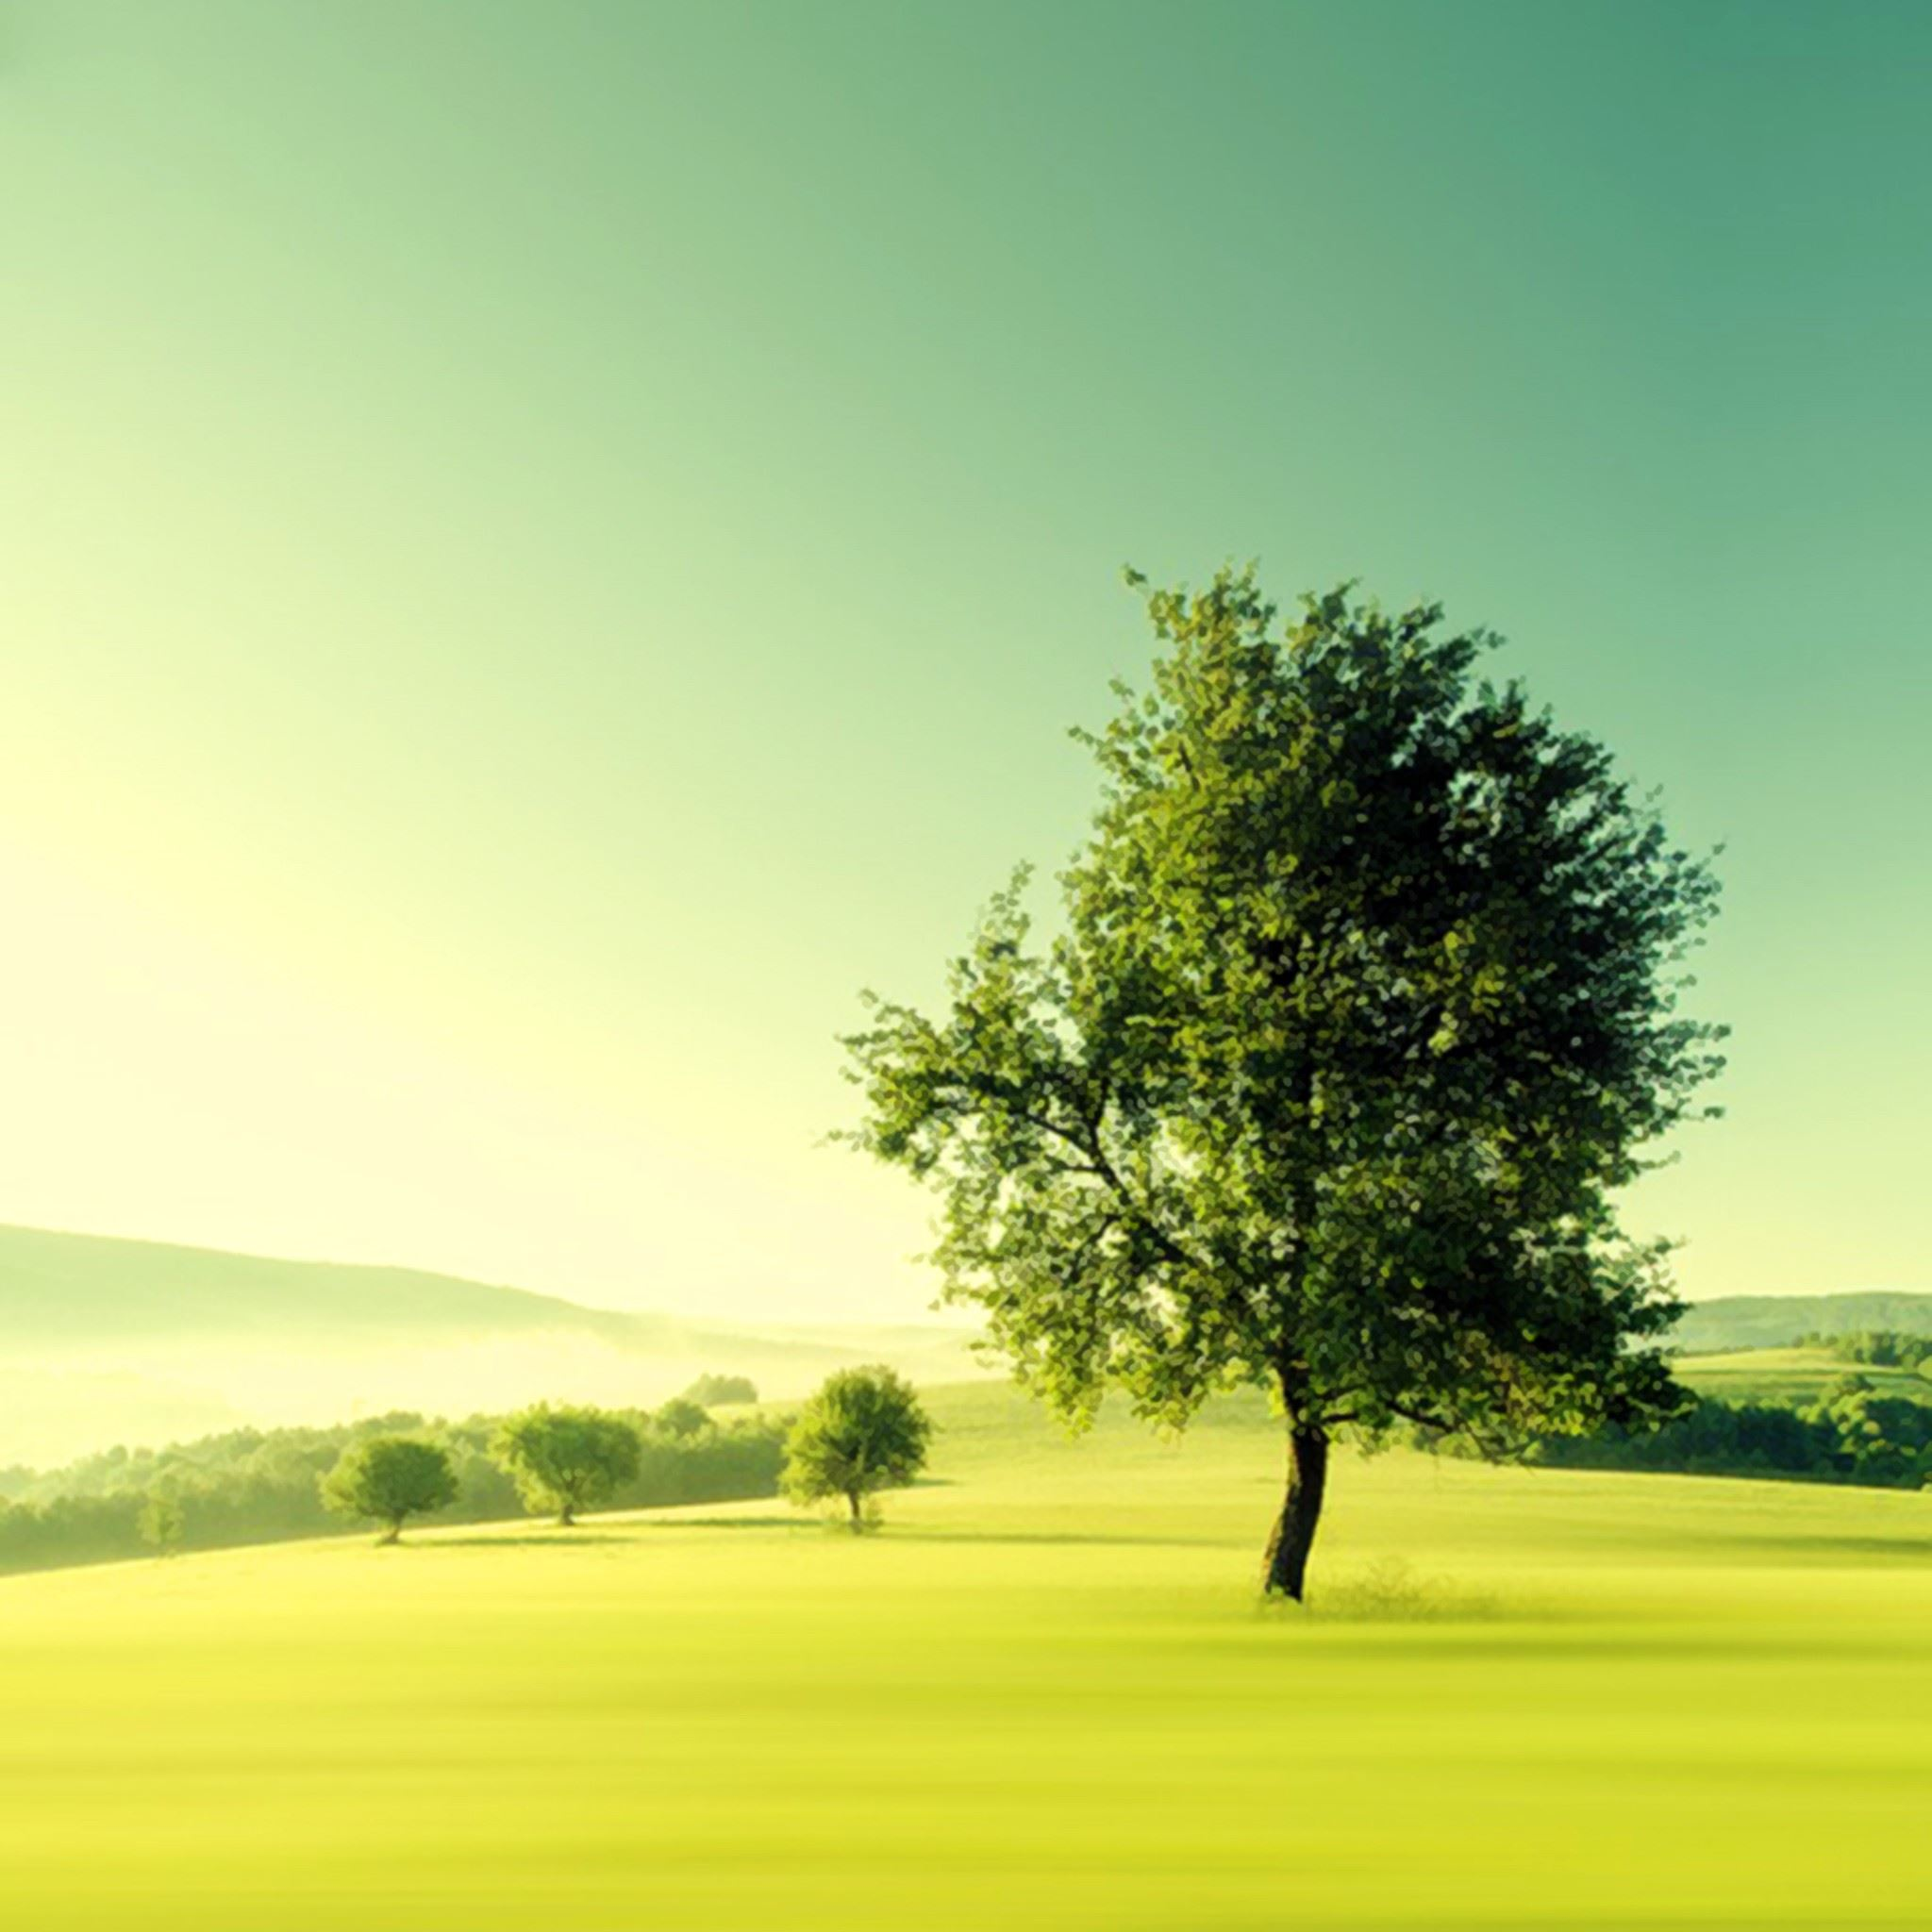 Nature Lonely Tree Plain Field iPad Air wallpaper